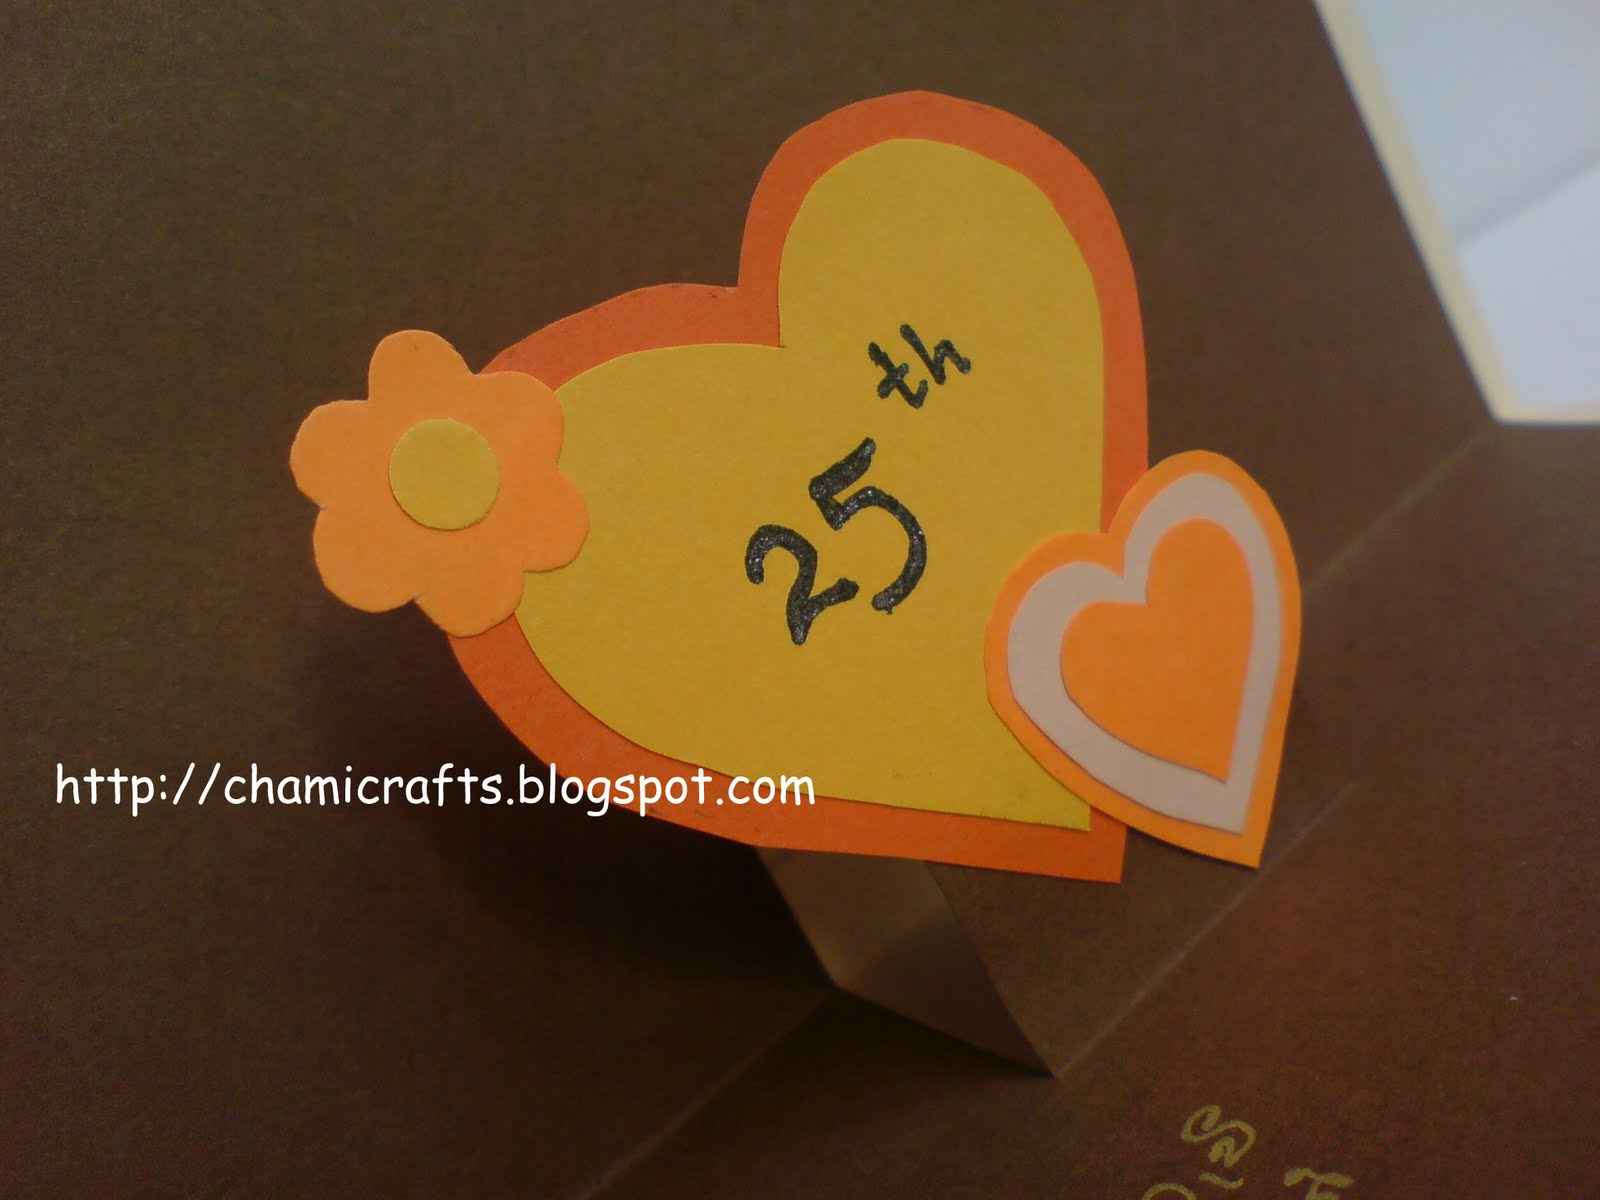 Card Making Ideas For 25th Anniversary Part - 39: Chami Crafts - Handmade Greeting Cards: Wedding Anniversary Card With  Pop-up!!!